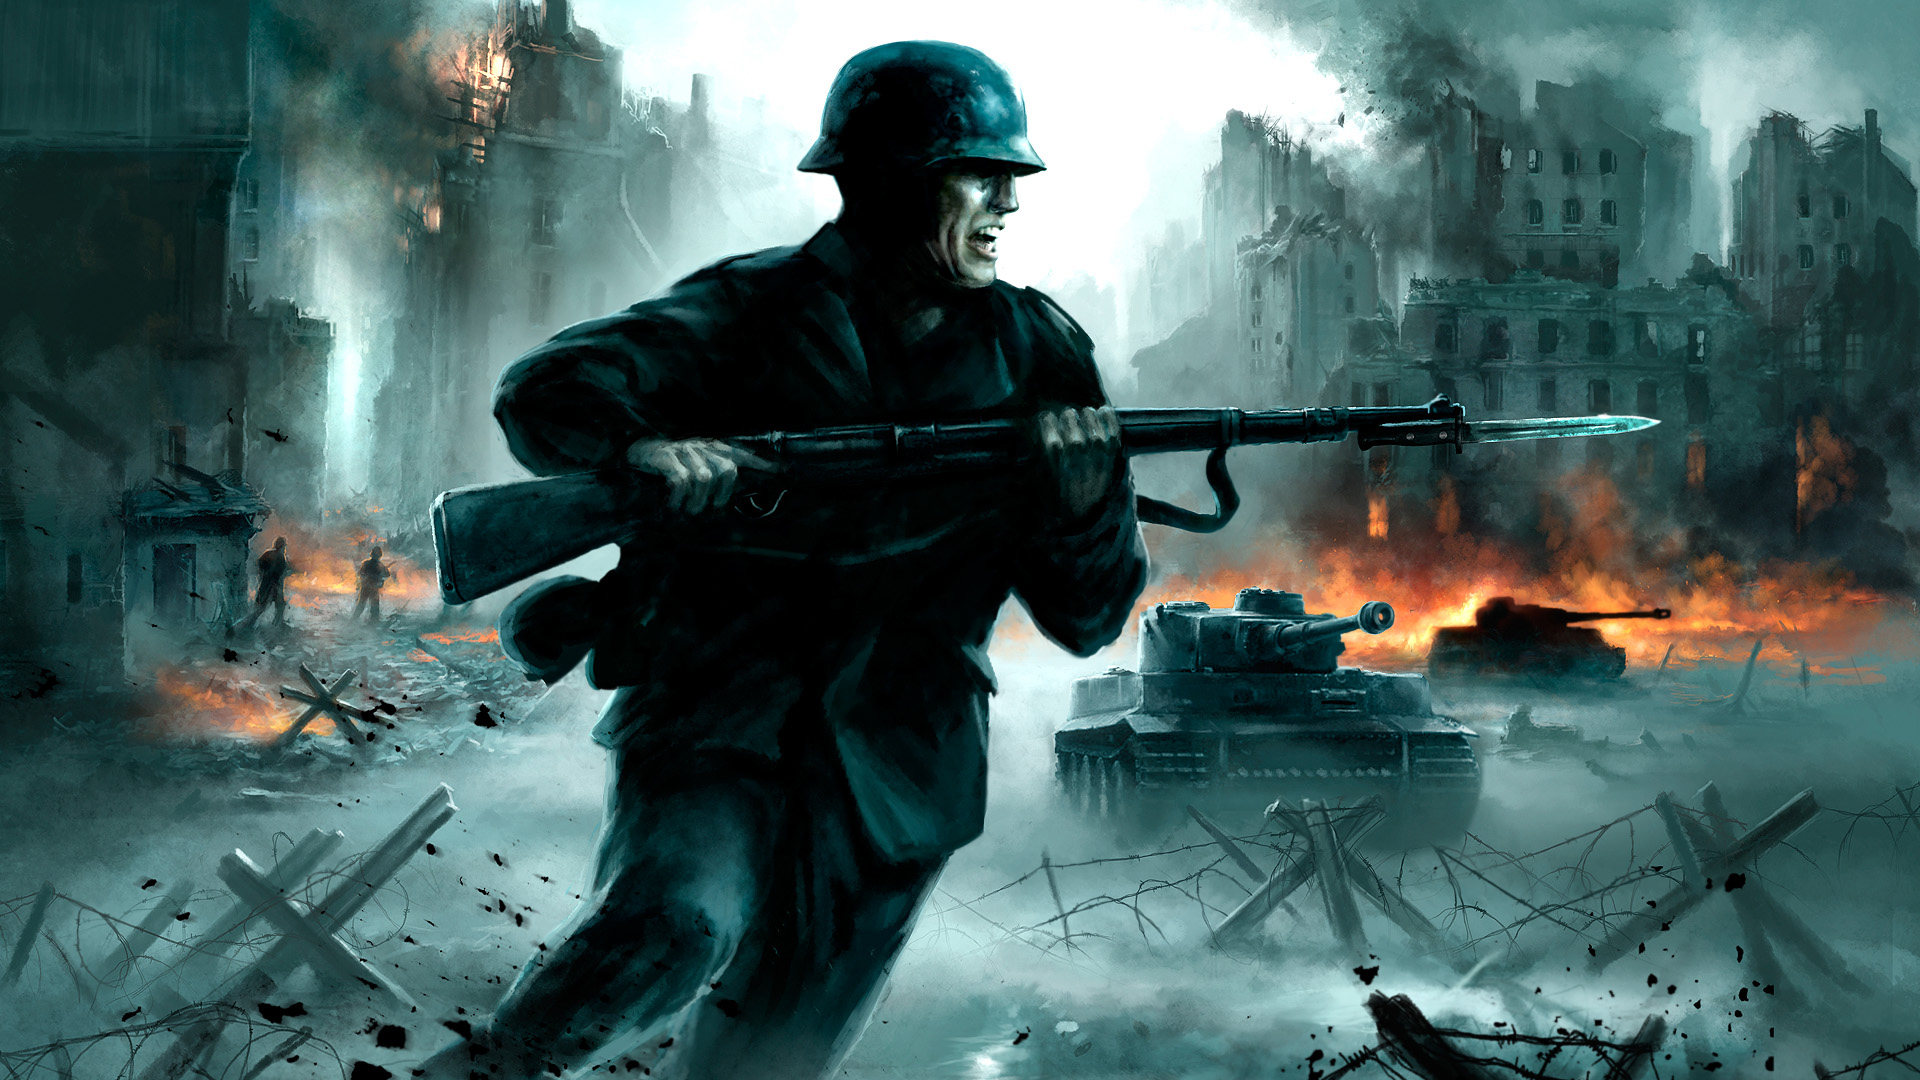 Soldiers guns fire smoke weapons tanks world war ii panzer soldiers guns fire smoke weapons tanks world war ii panzer free wallpaper wallpaperjam altavistaventures Image collections